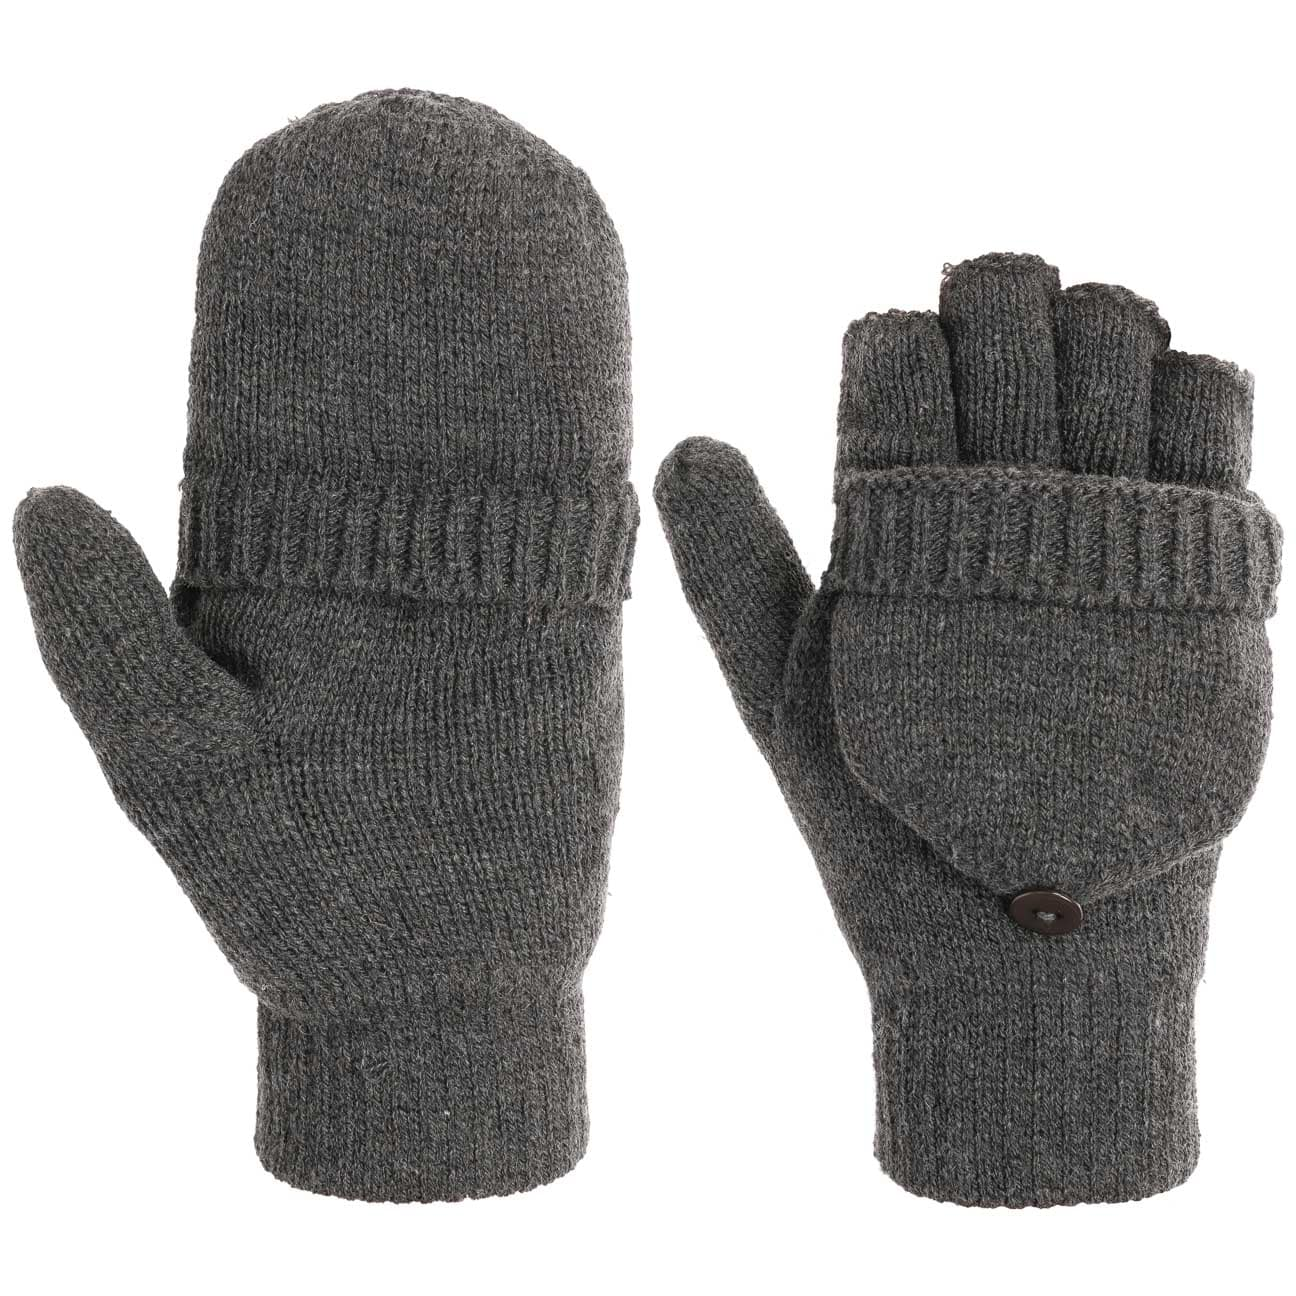 Gants Thinsulate Fingerless by Lipodo  gants en tricot